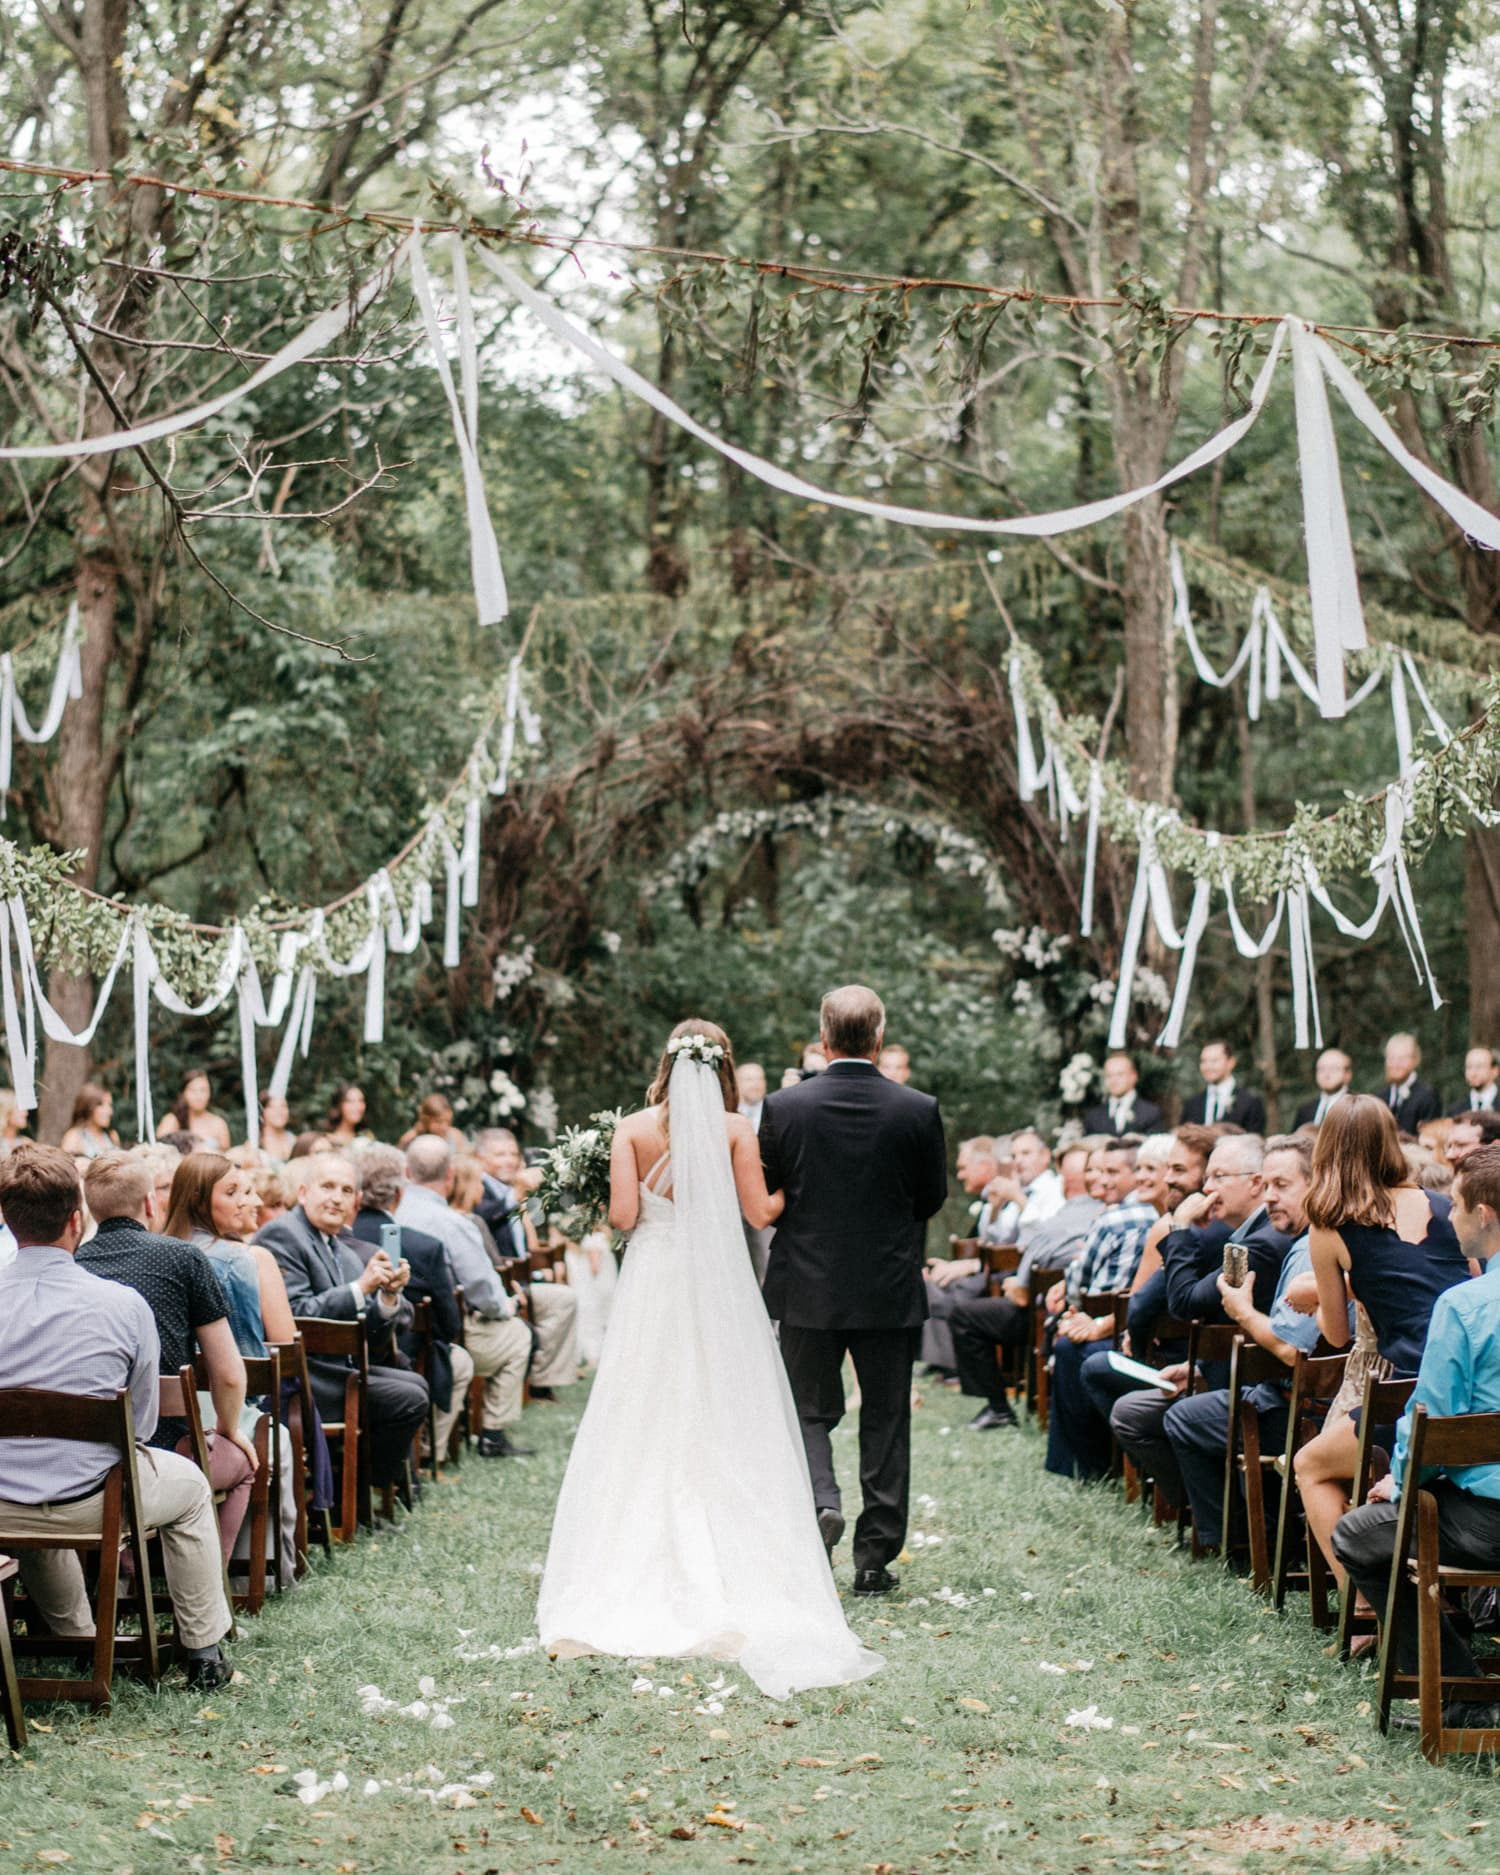 bride and father walk down aisle during outdoor wedding ceremony